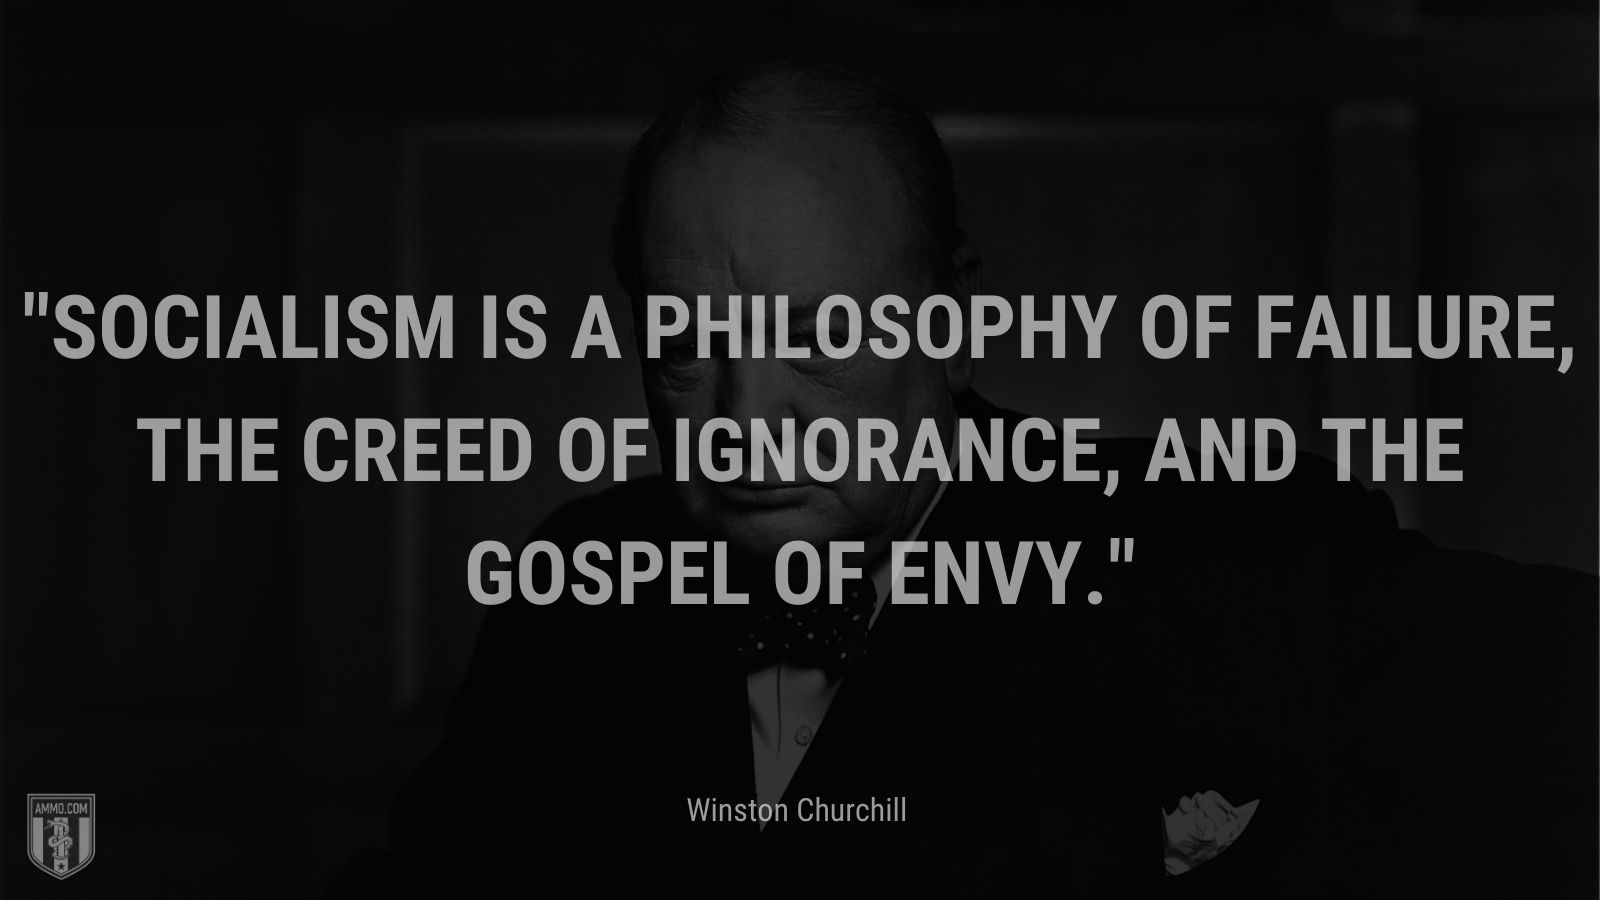 Socialism is a philosophy of failure, the creed of ignorance, and the gospel of envy.